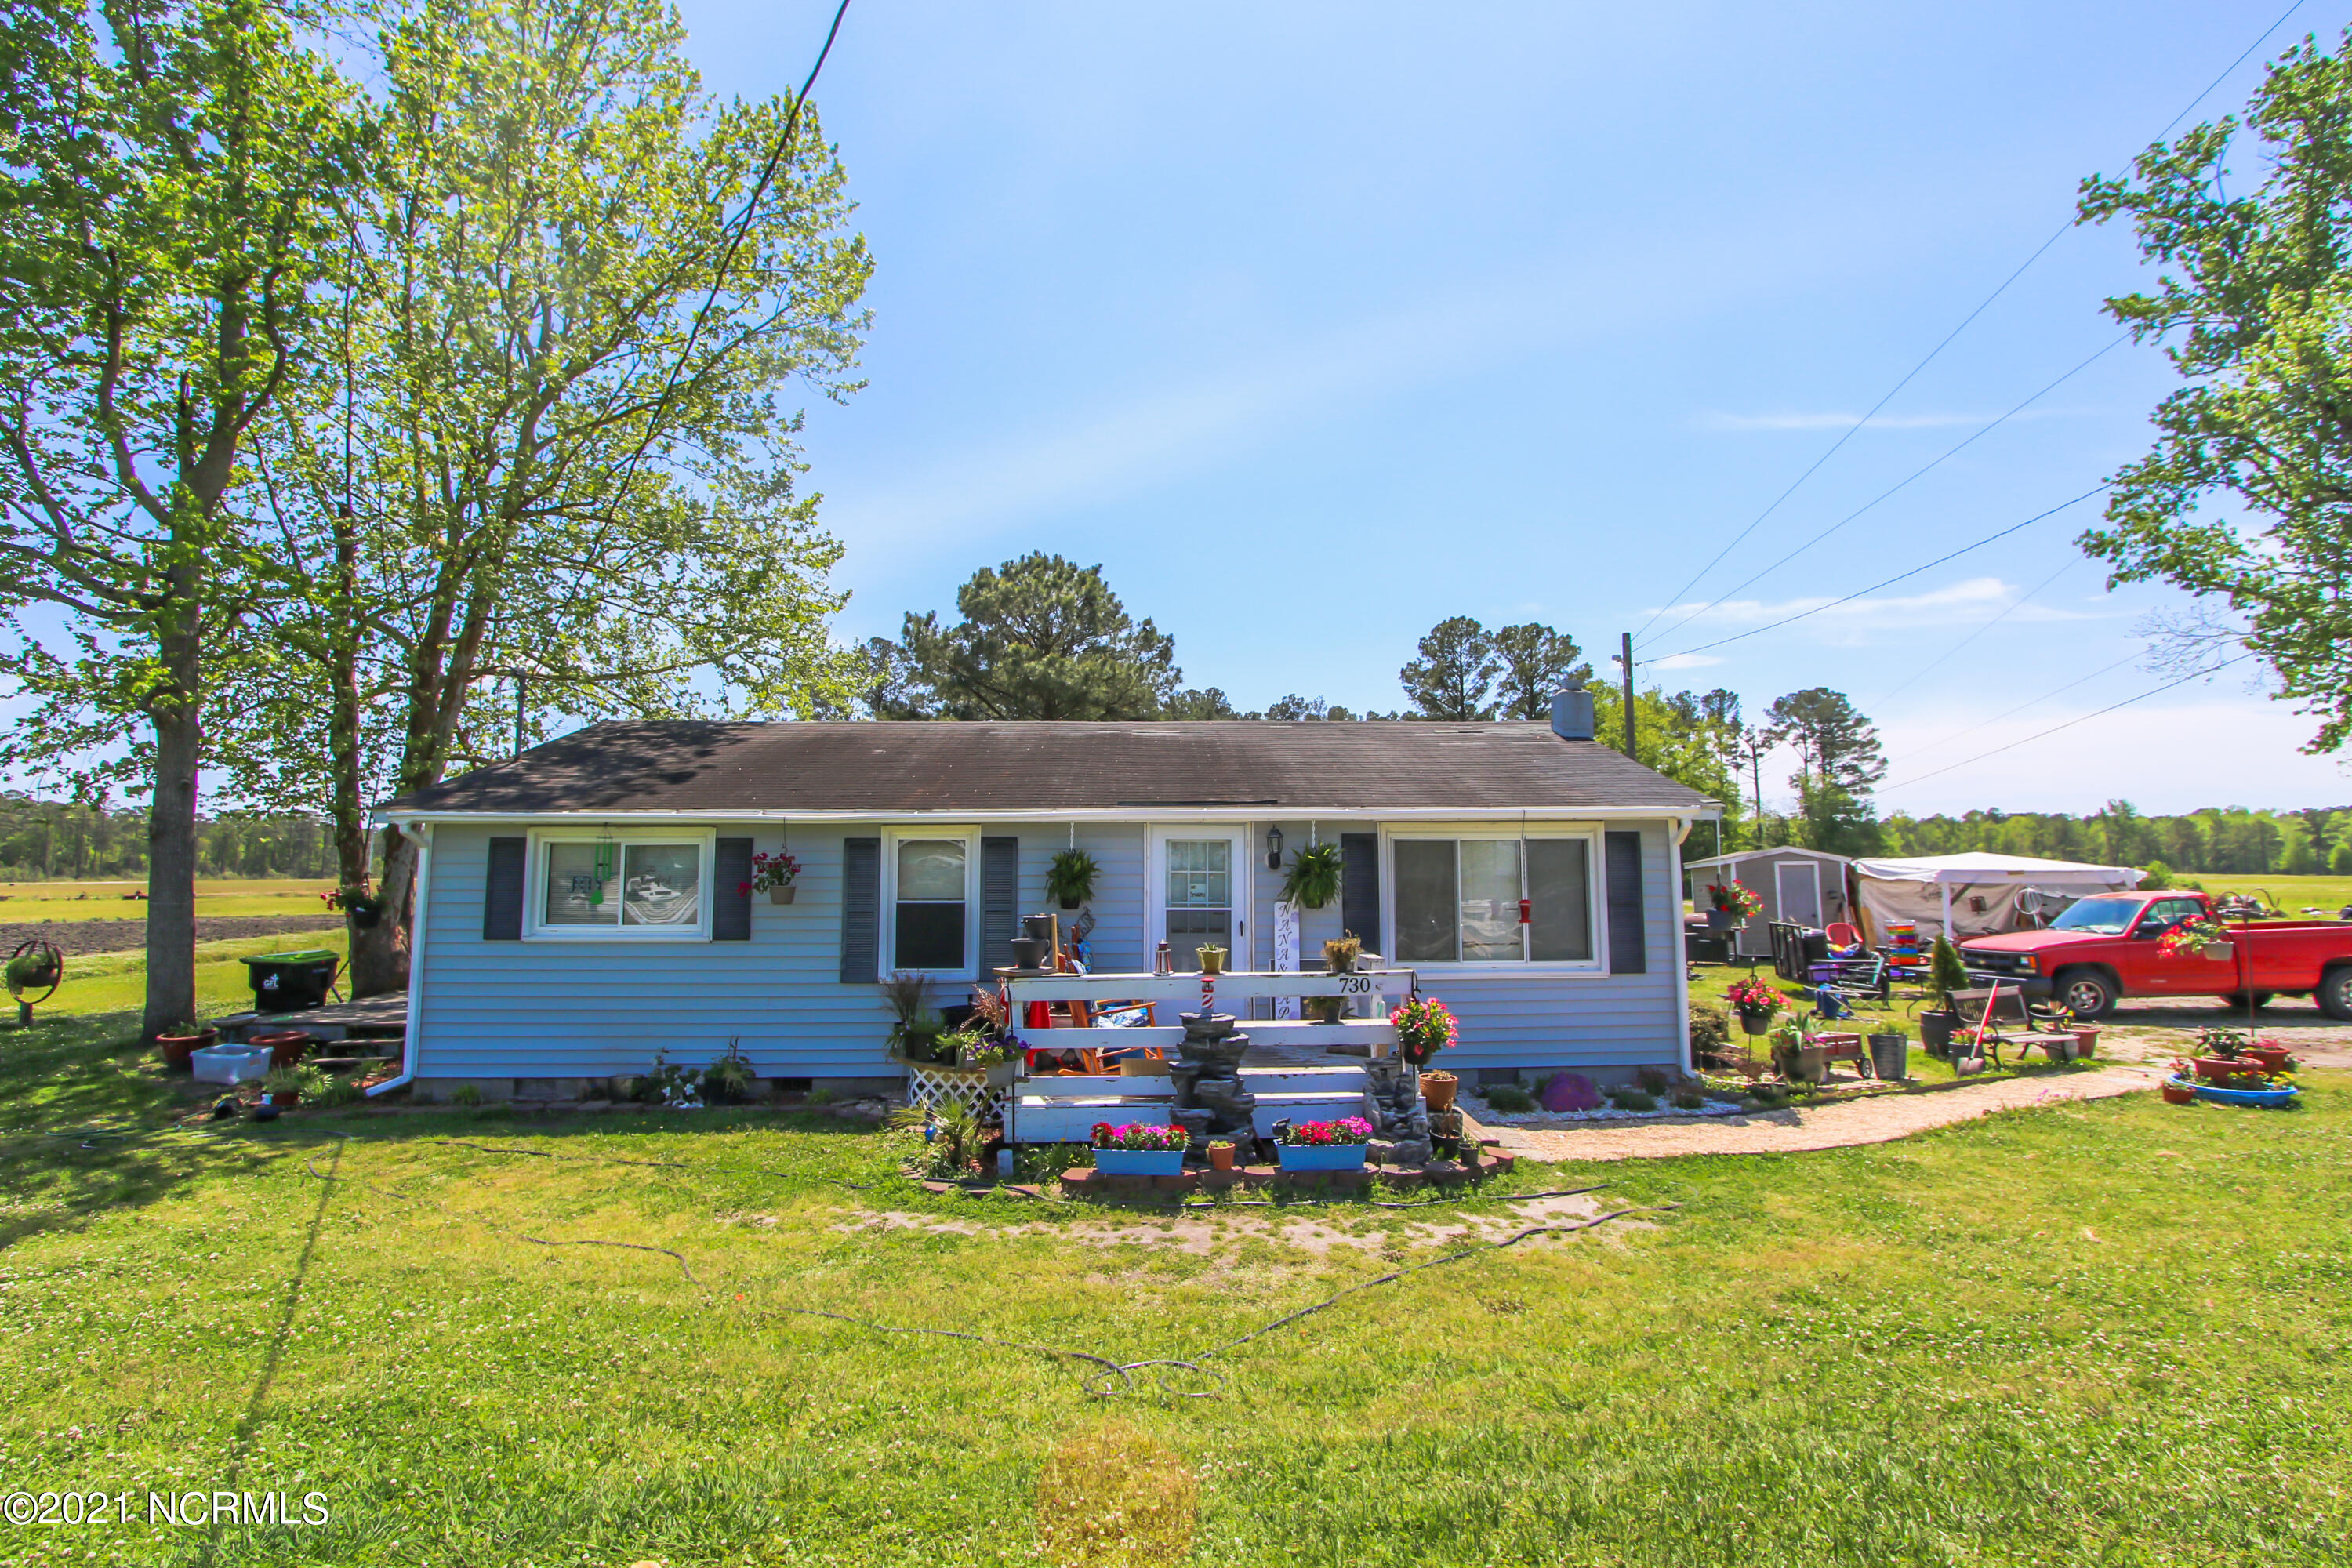 welcome home to 730 Grants Creek Rd. This 3 bedroom 1 bathroom home with just over 1000 HSF and sitting on 0.42 acres.